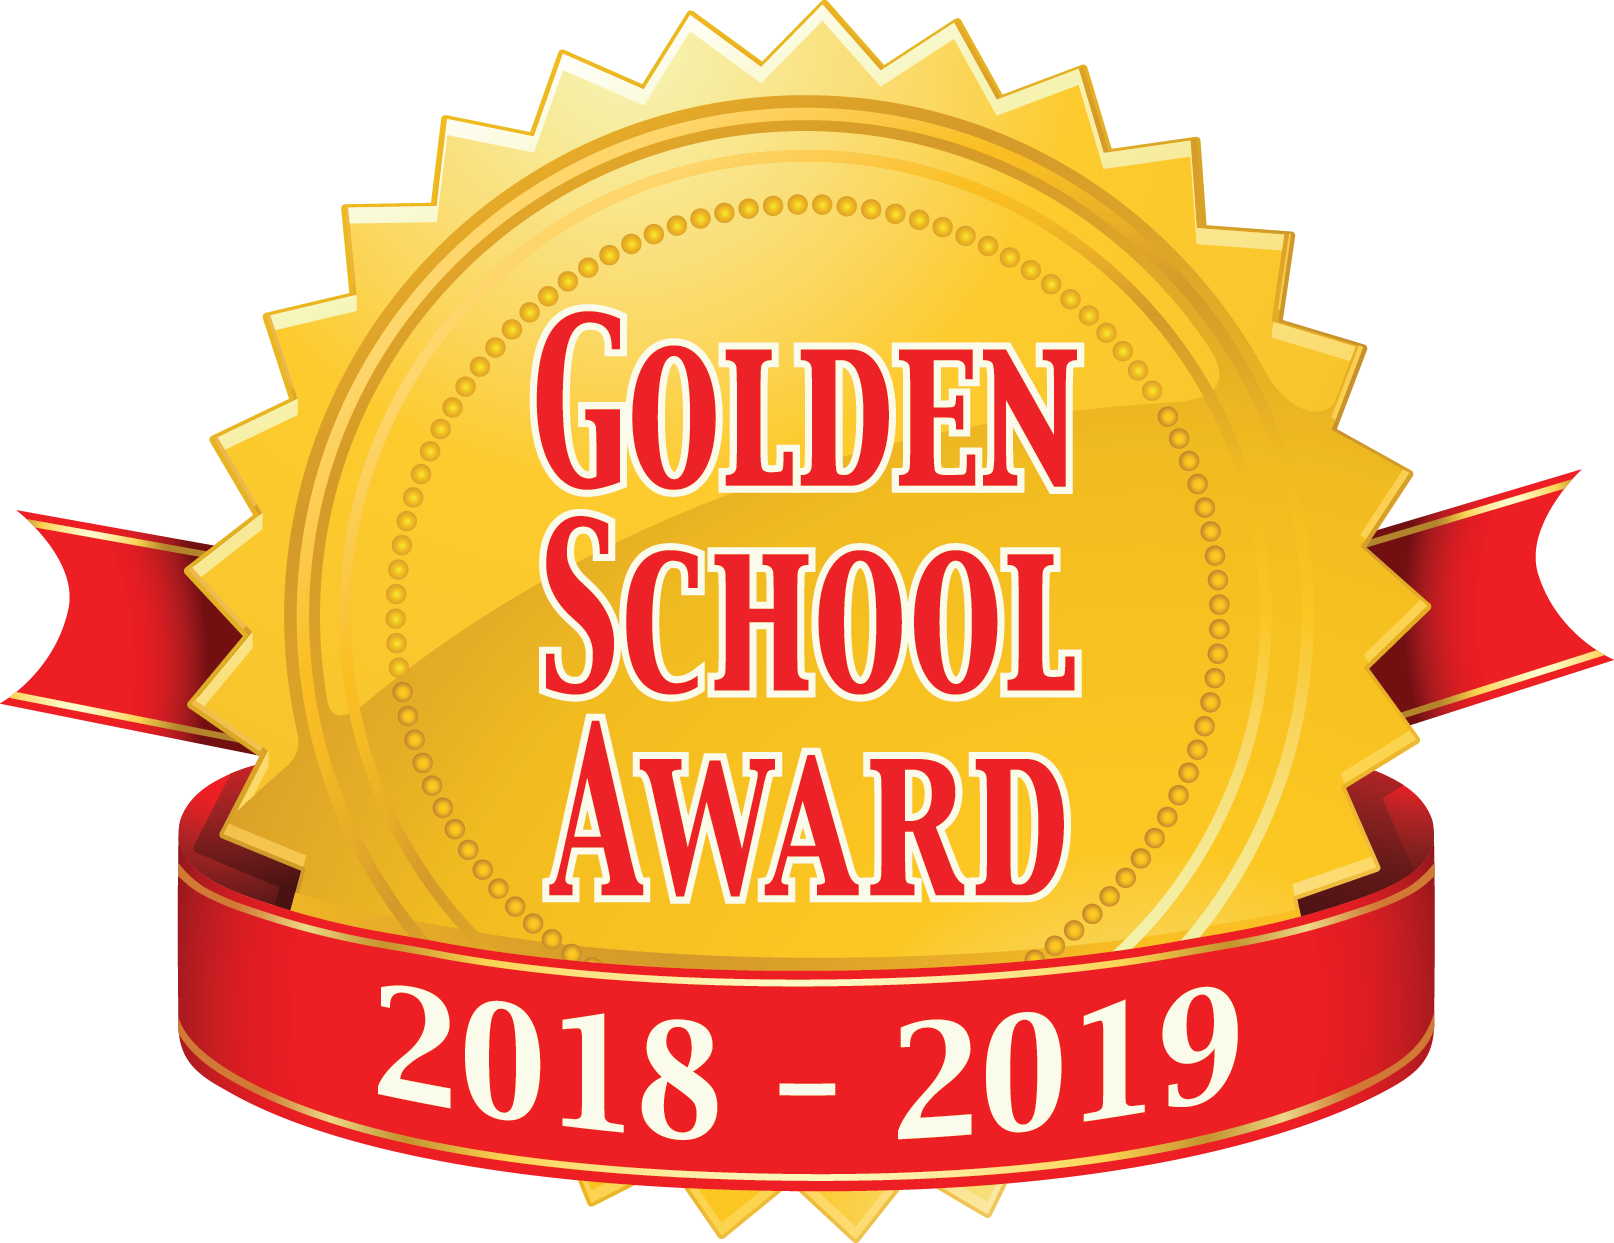 Golden School Award 2018-19